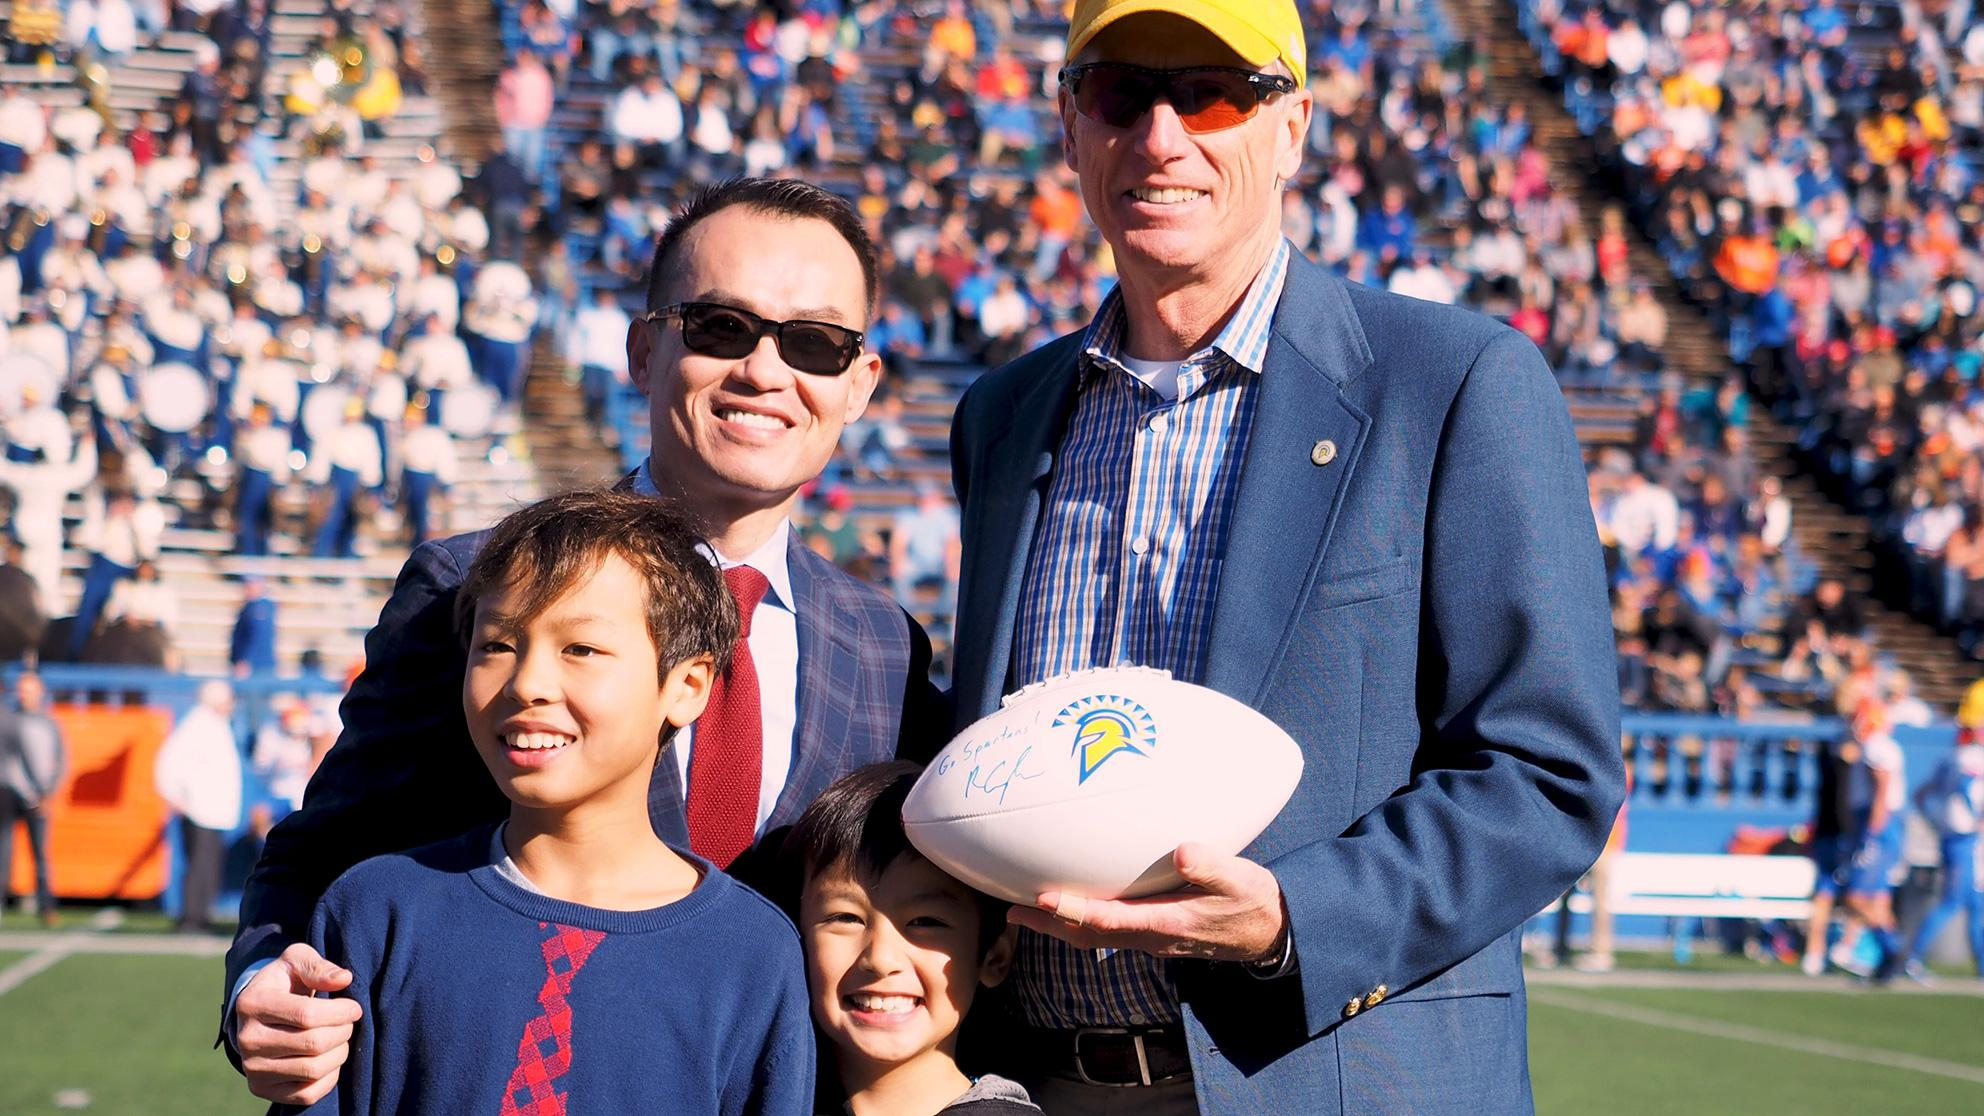 A father with his two young boys next to a tall man holding a football